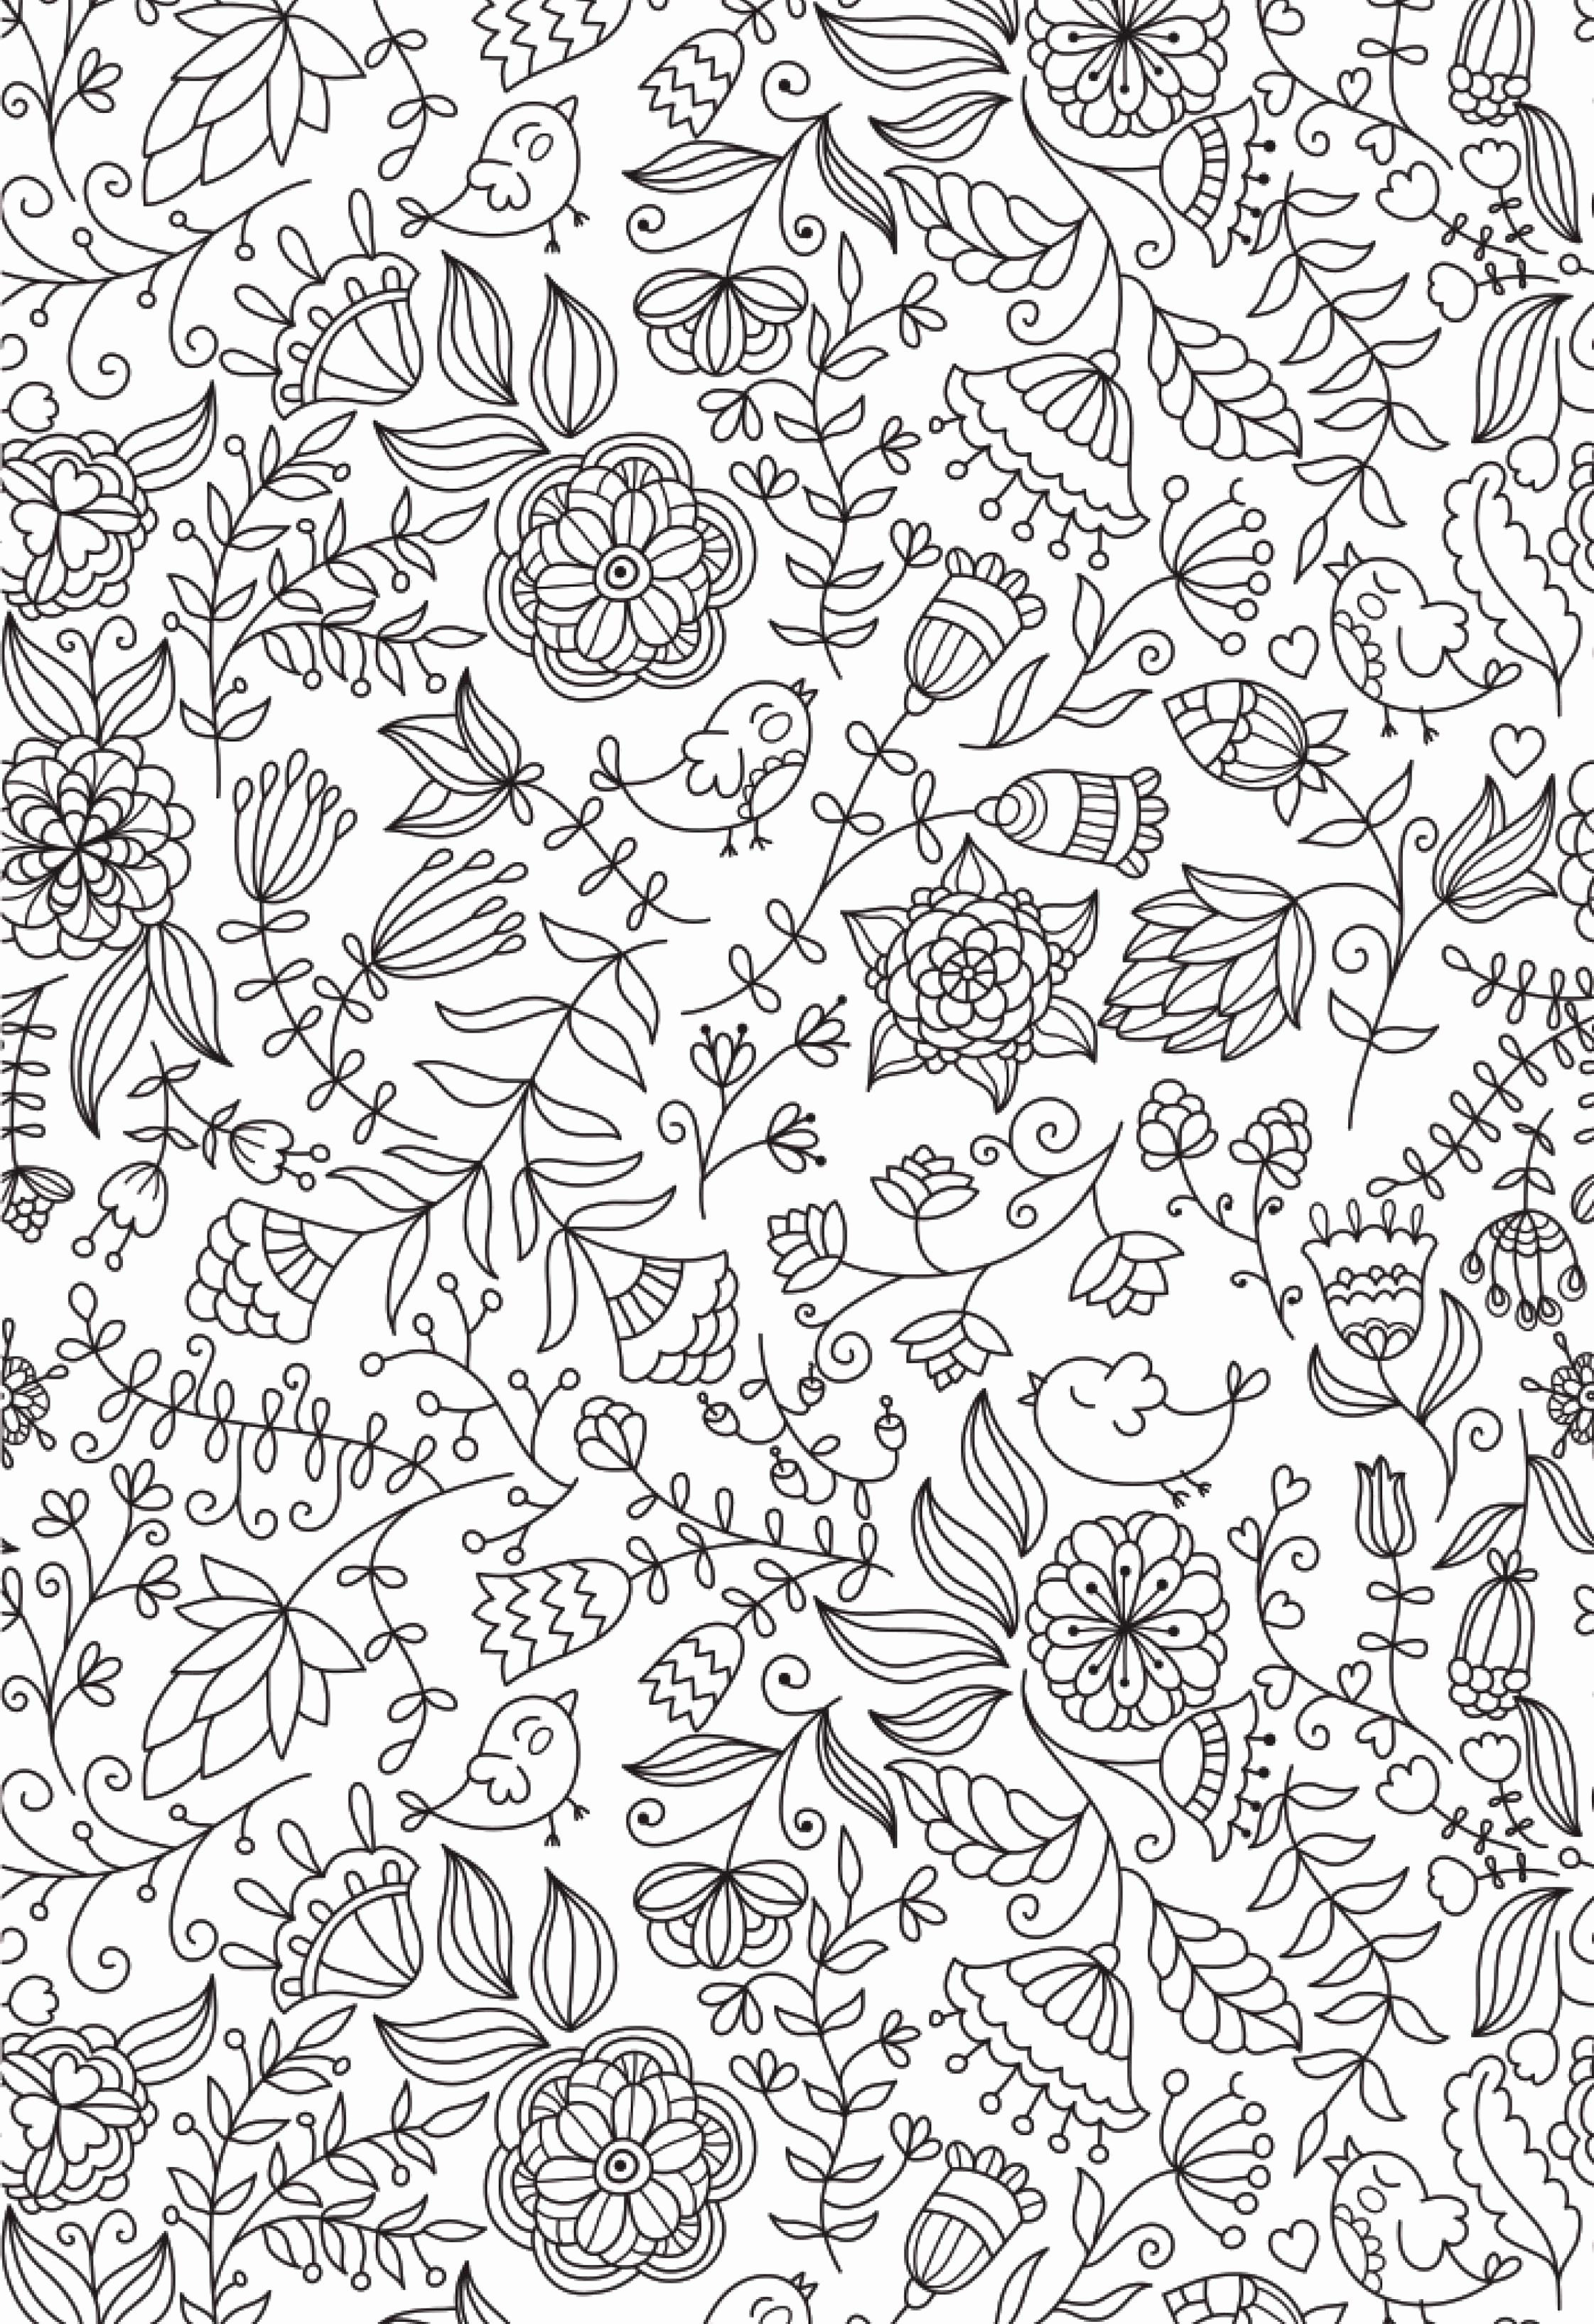 Pin On Coloring Page Books For Kids And Adult [ 3270 x 2243 Pixel ]